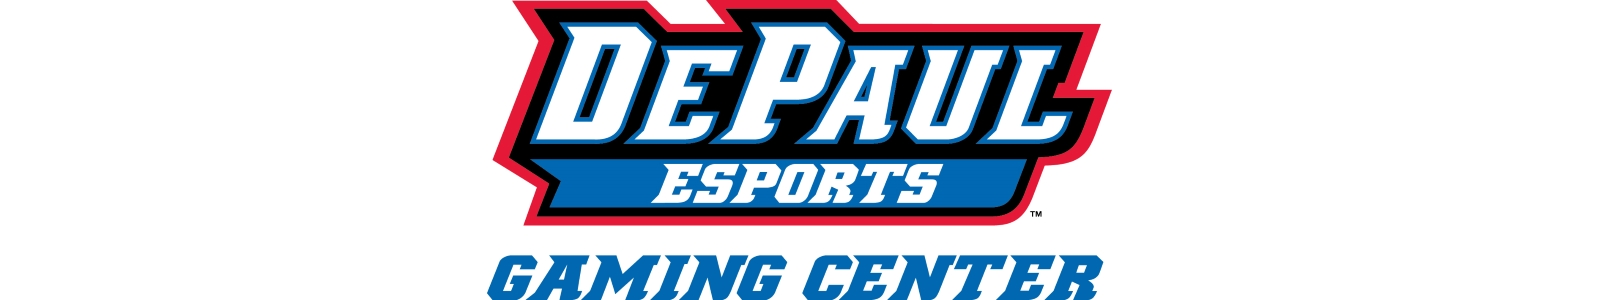 DePaul Esports Gaming Center